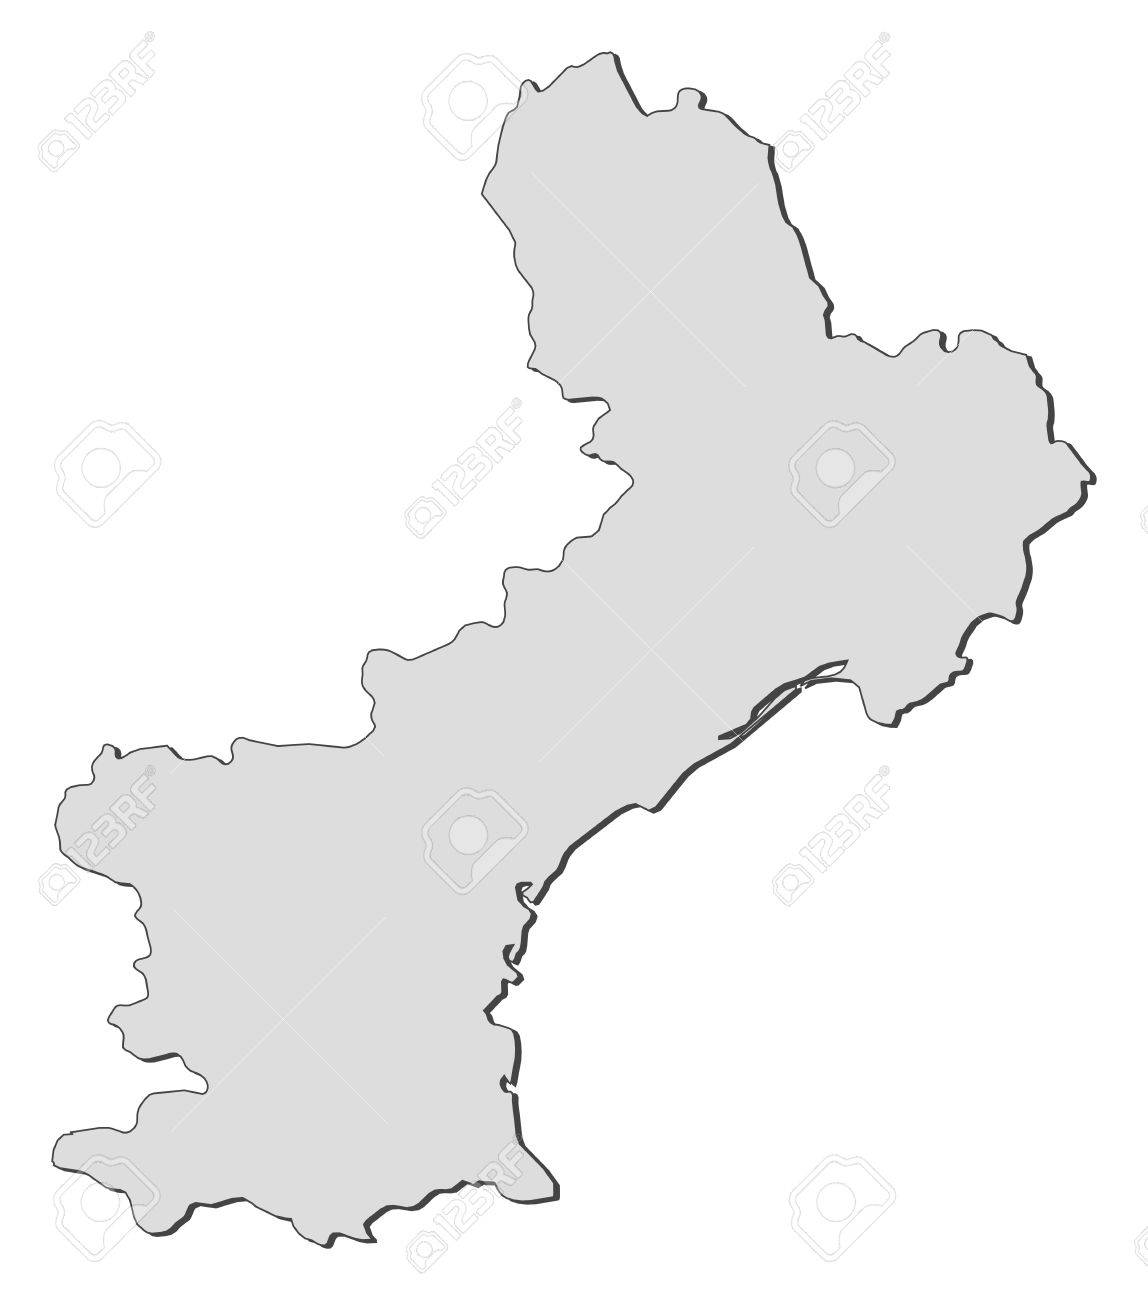 Map of Languedoc-Roussillon, a region of France. Stock Vector - 14396201